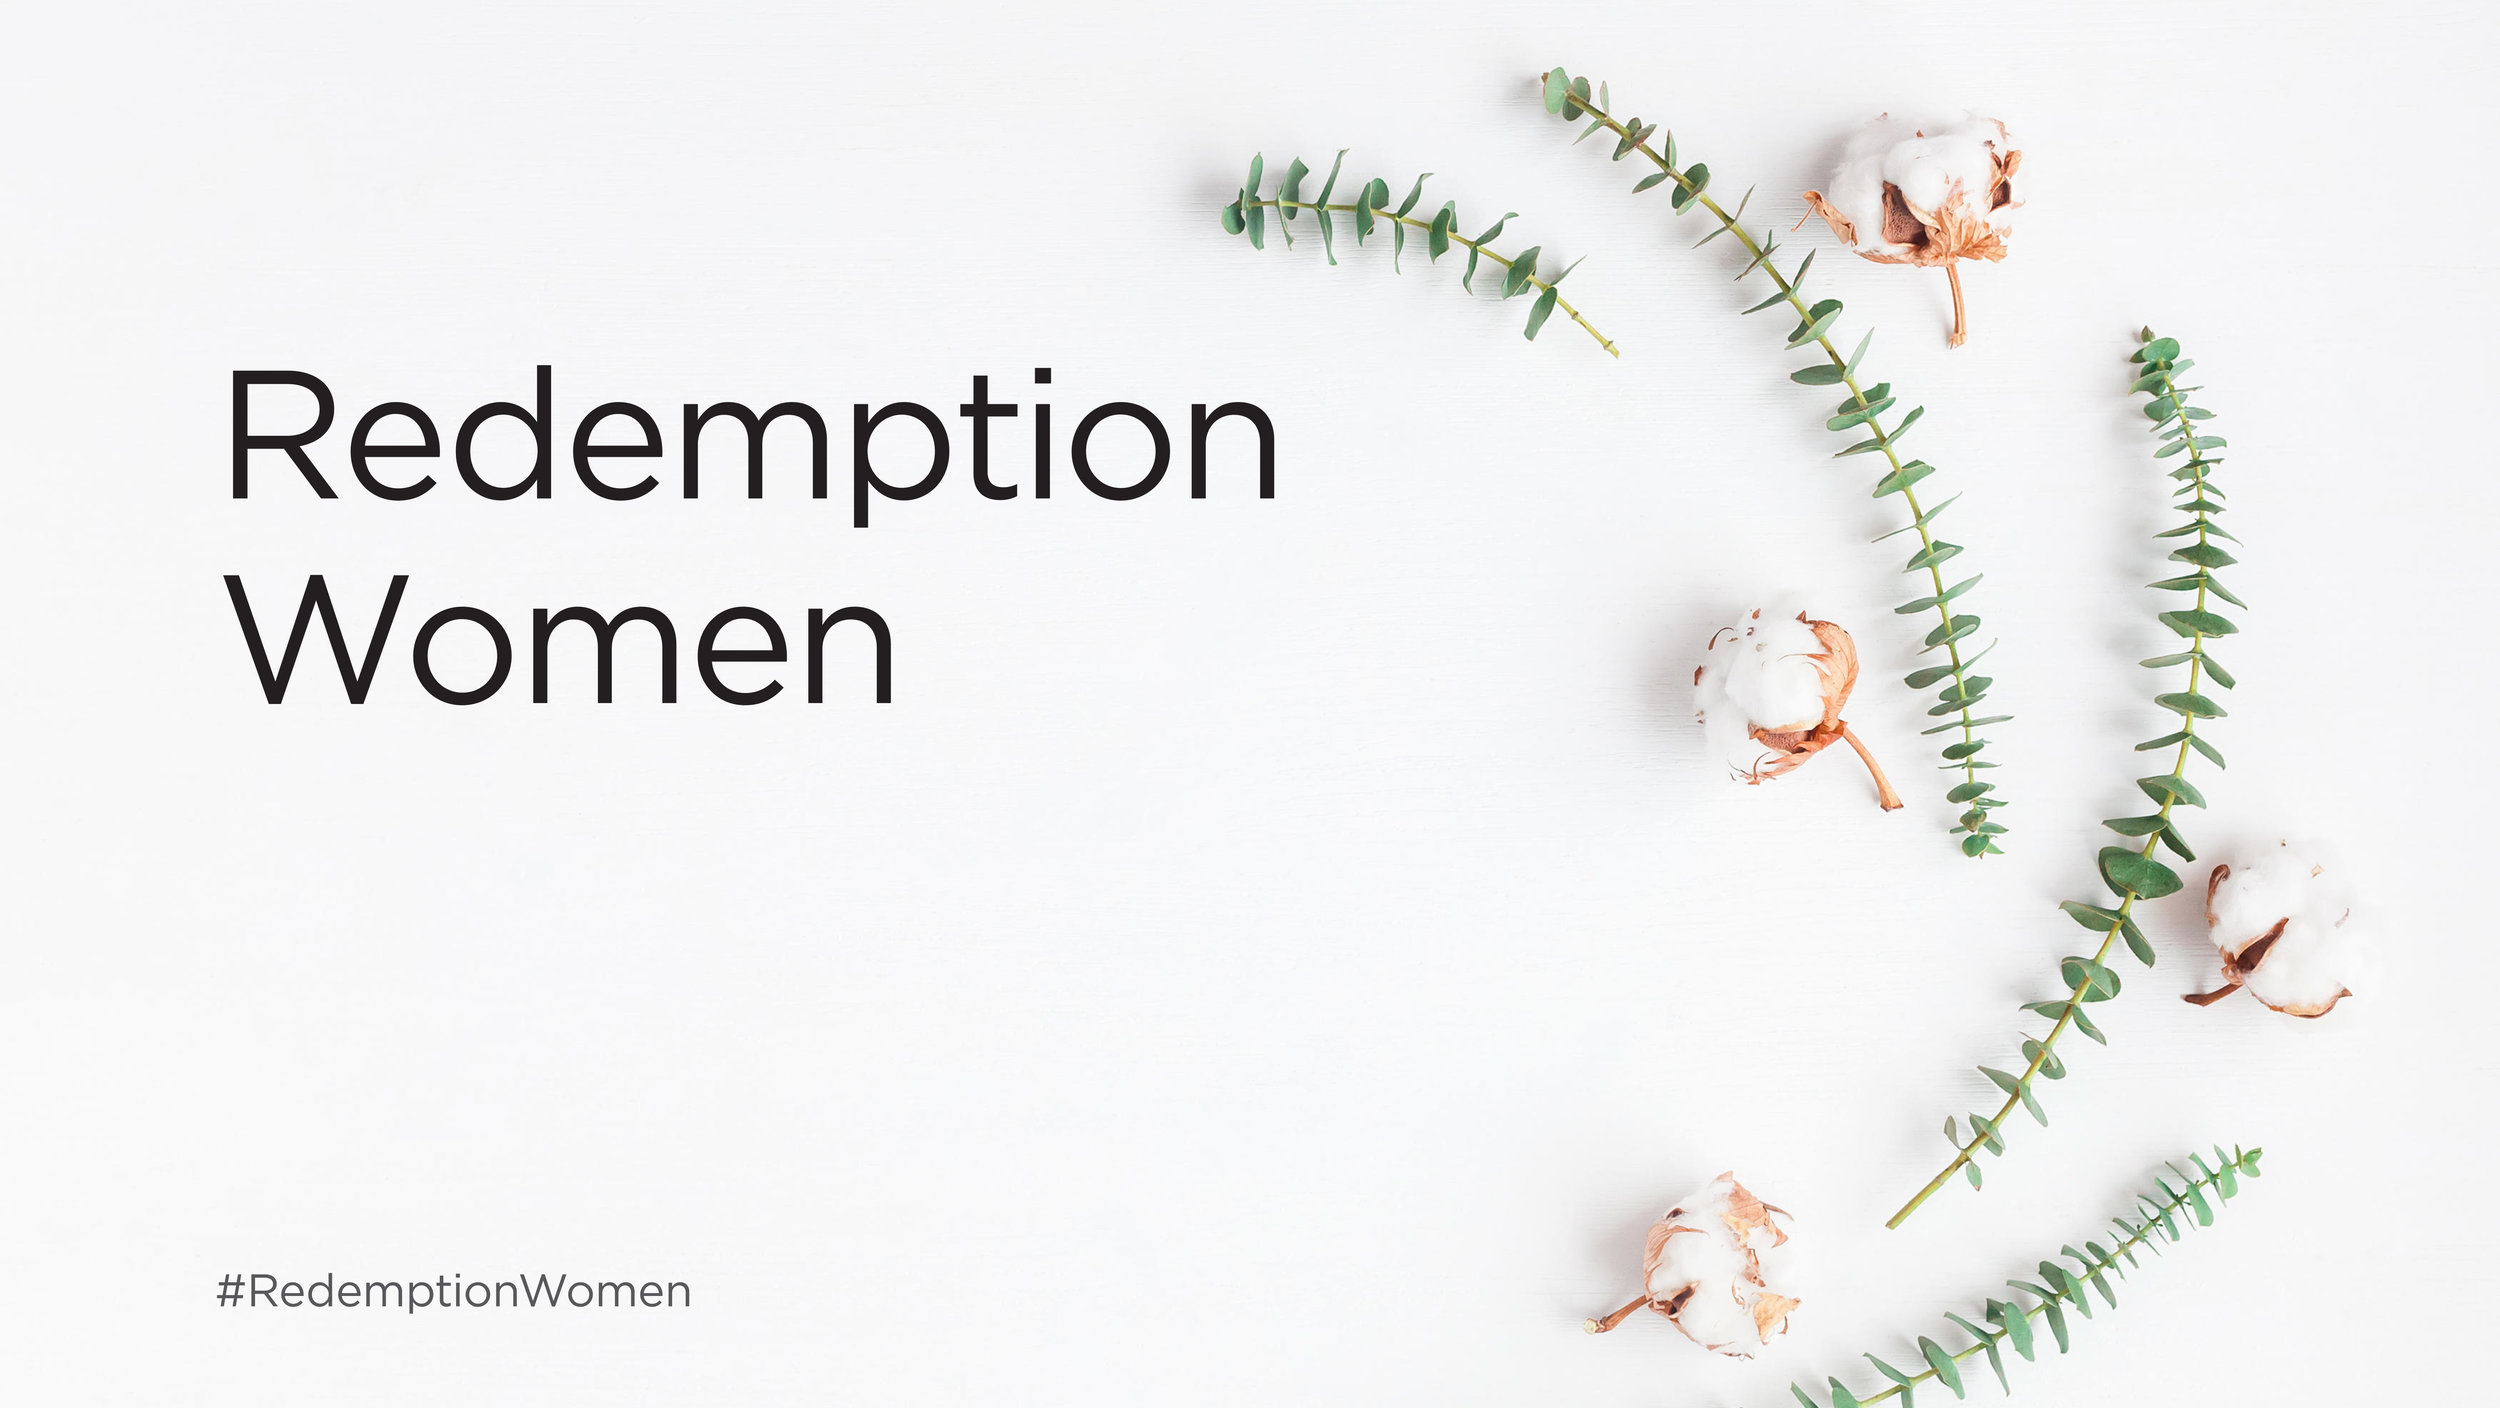 Redemption Women 1920 x 1080 vf.jpg